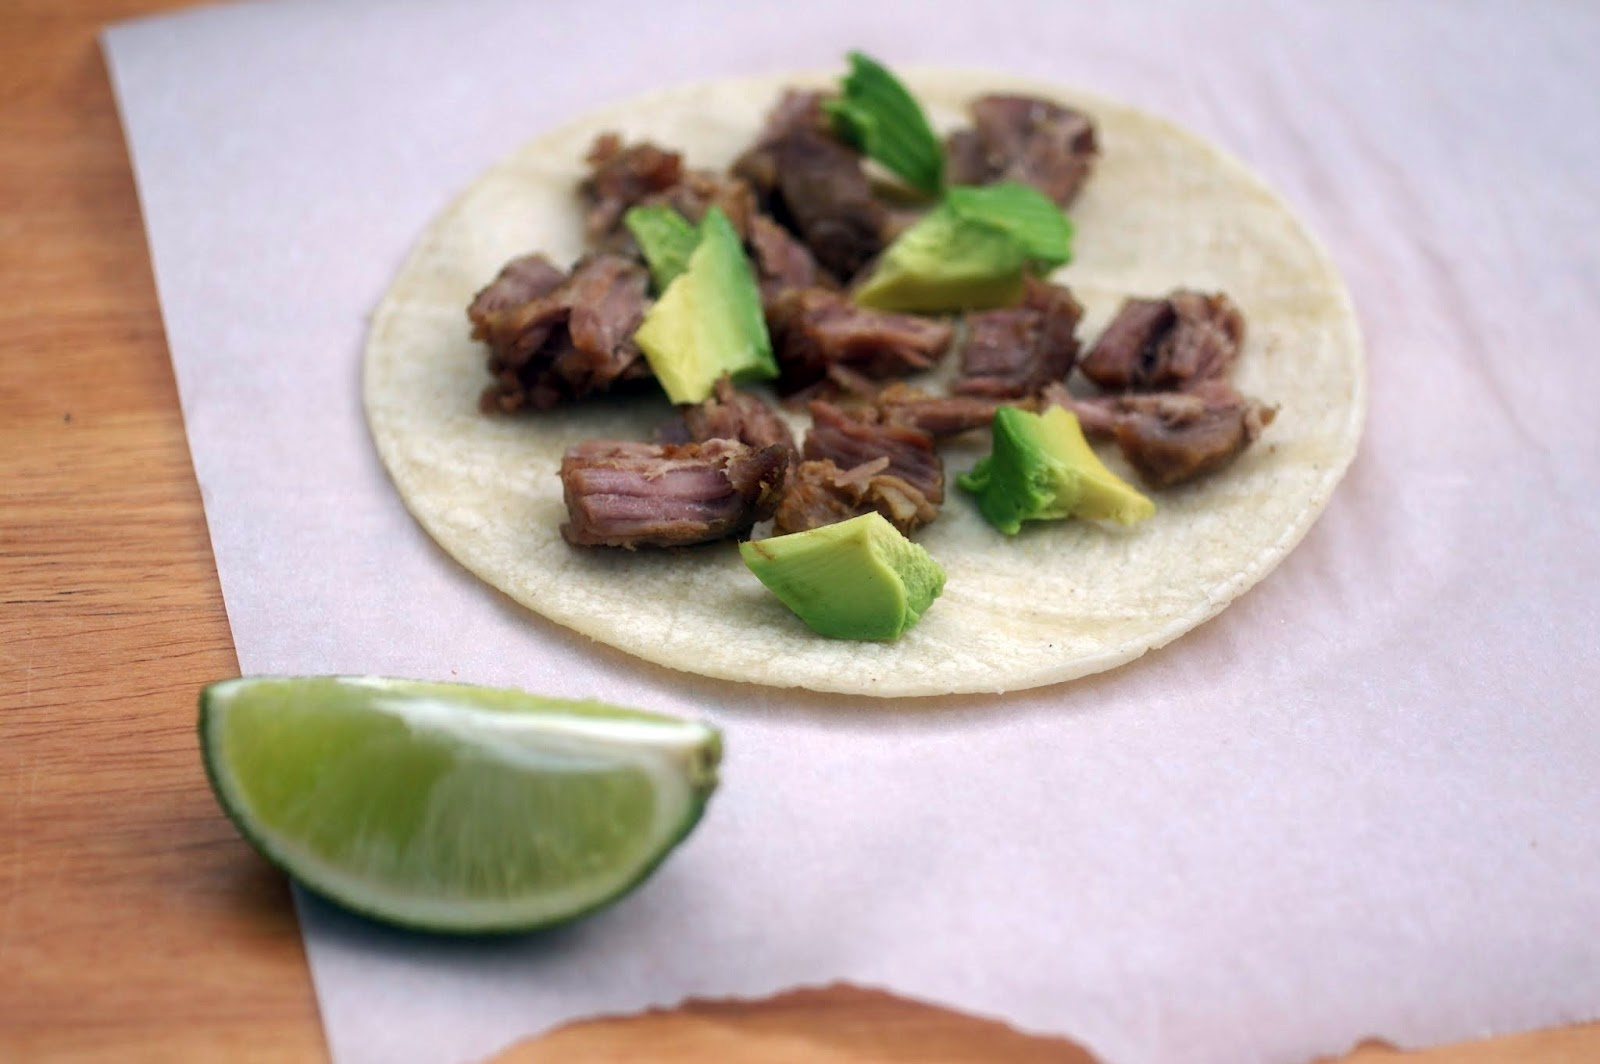 This week Dianna Kennedy, Mexico's famous and enduring chef is ...